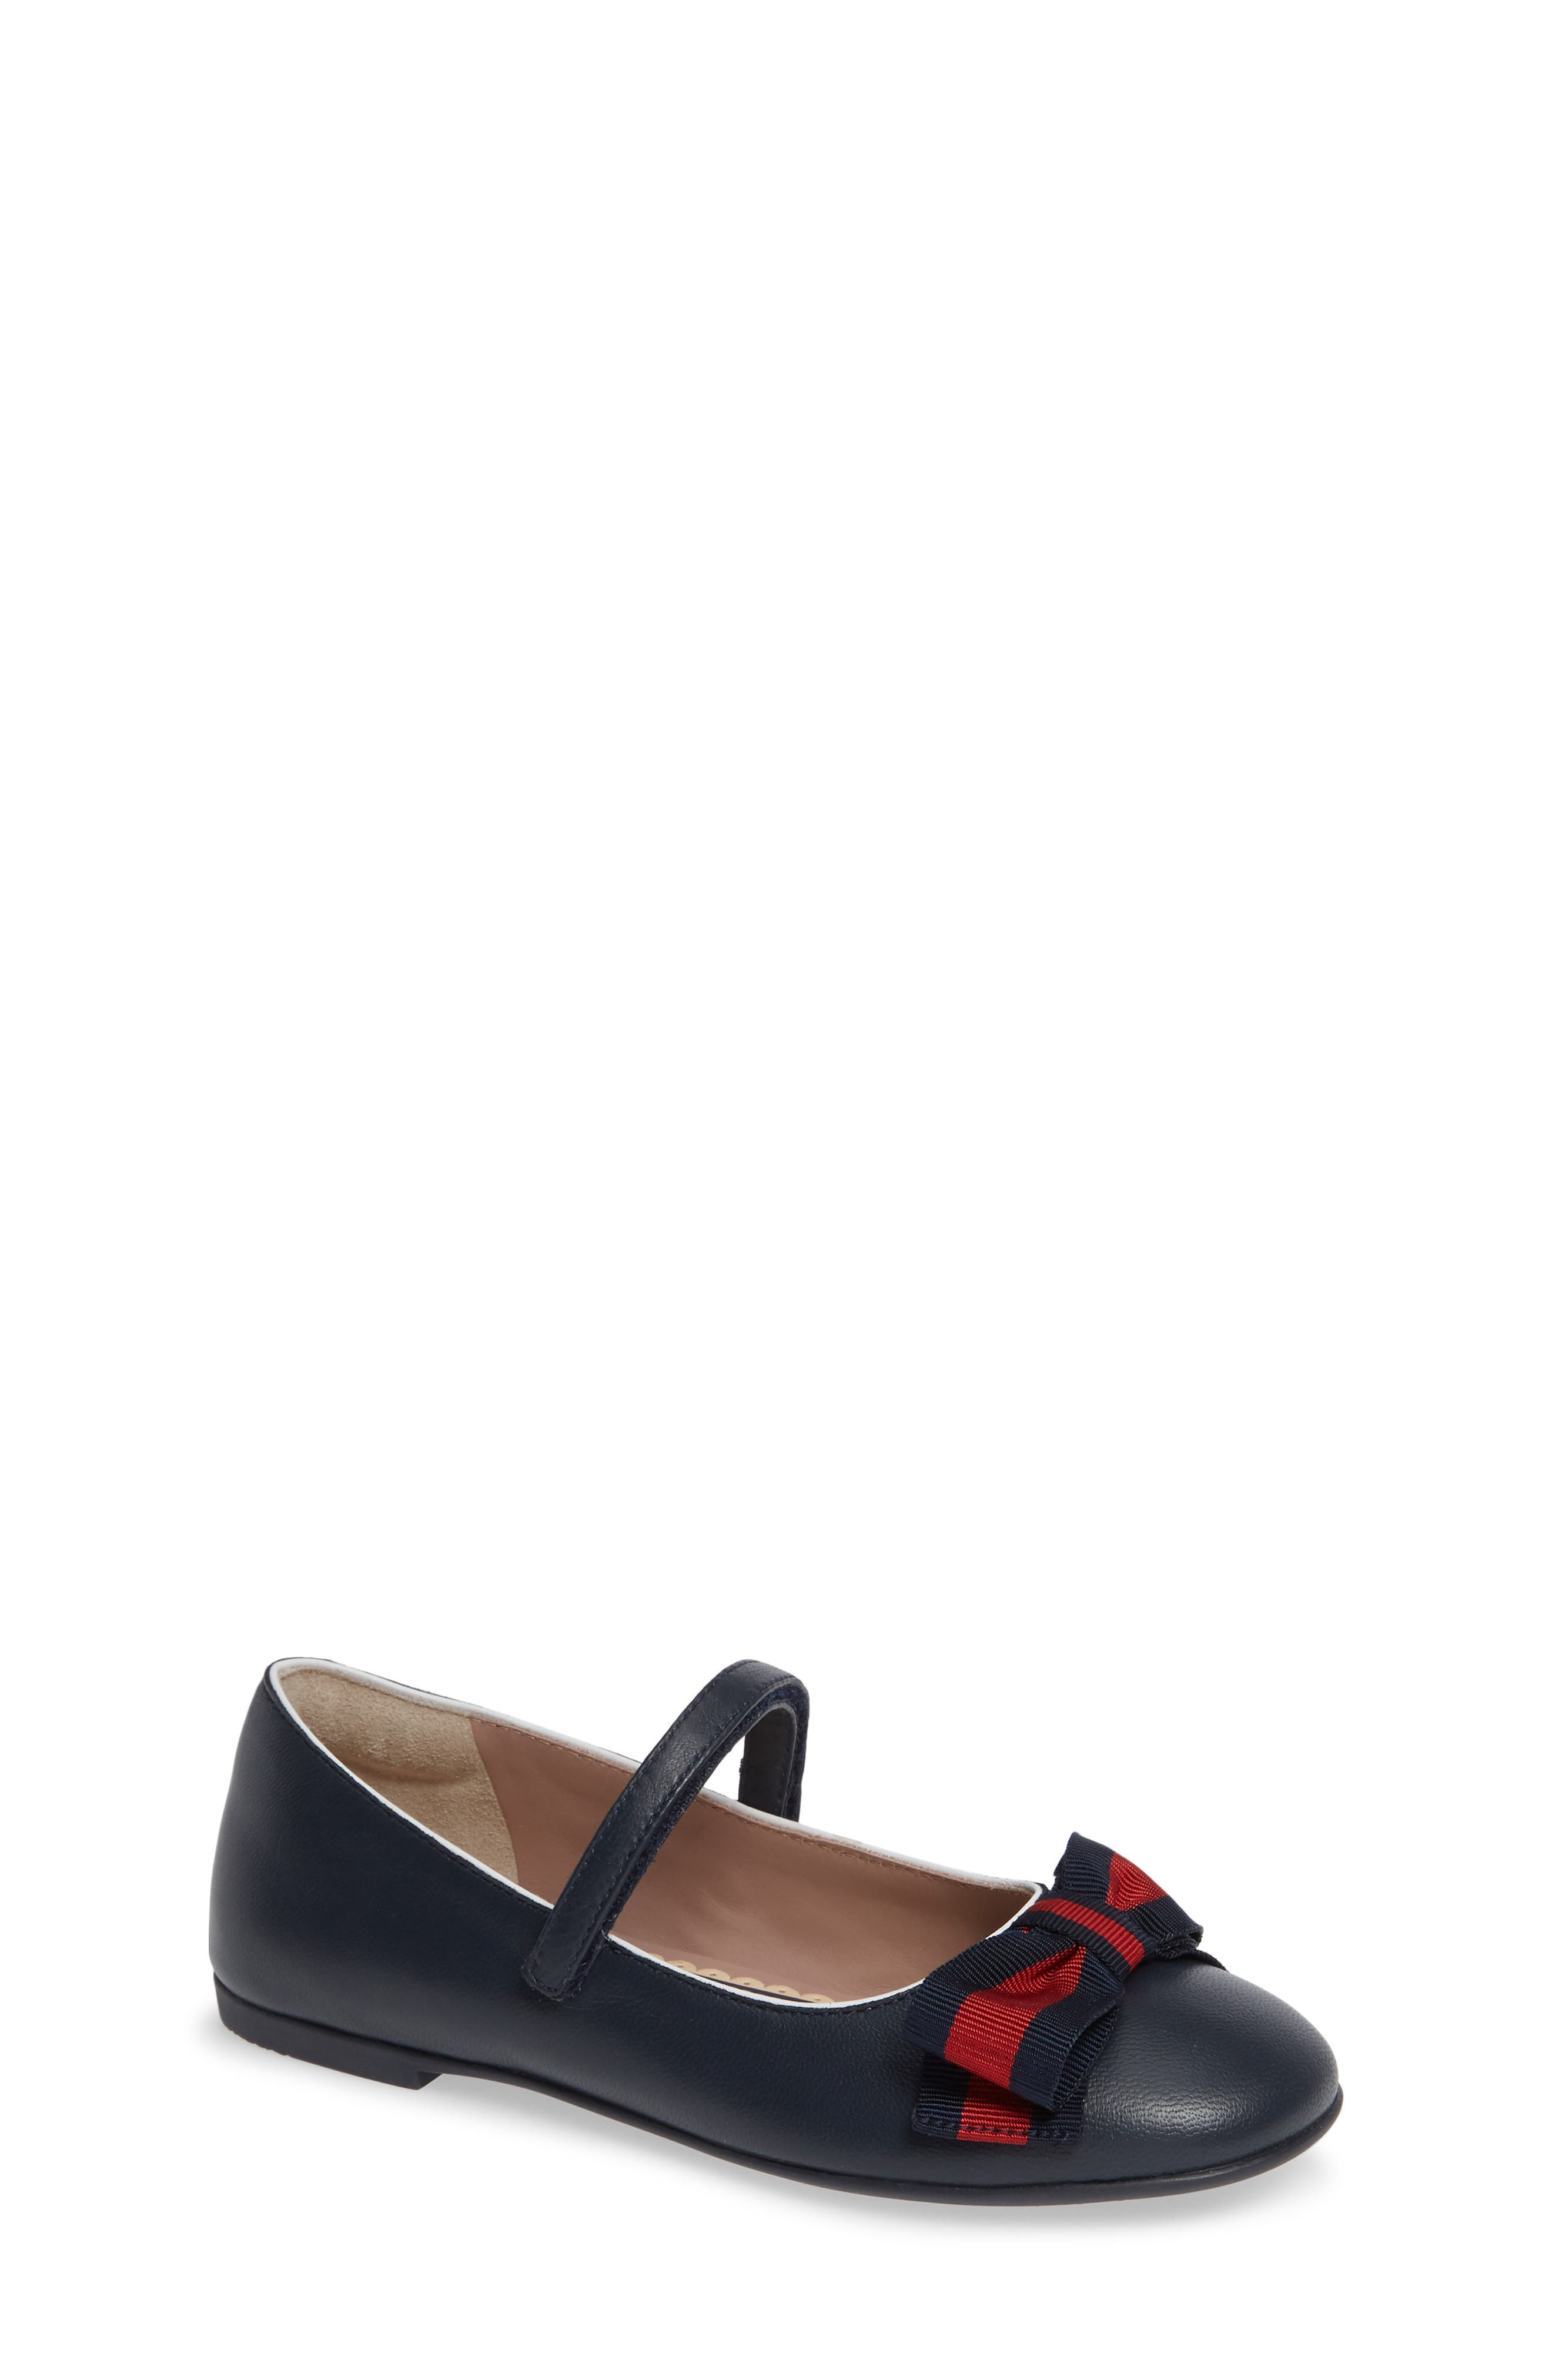 GUCCI, Cindy Mary Jane Flat, Main thumbnail 1, color, BLUE/ GREAT WHITE/ RED